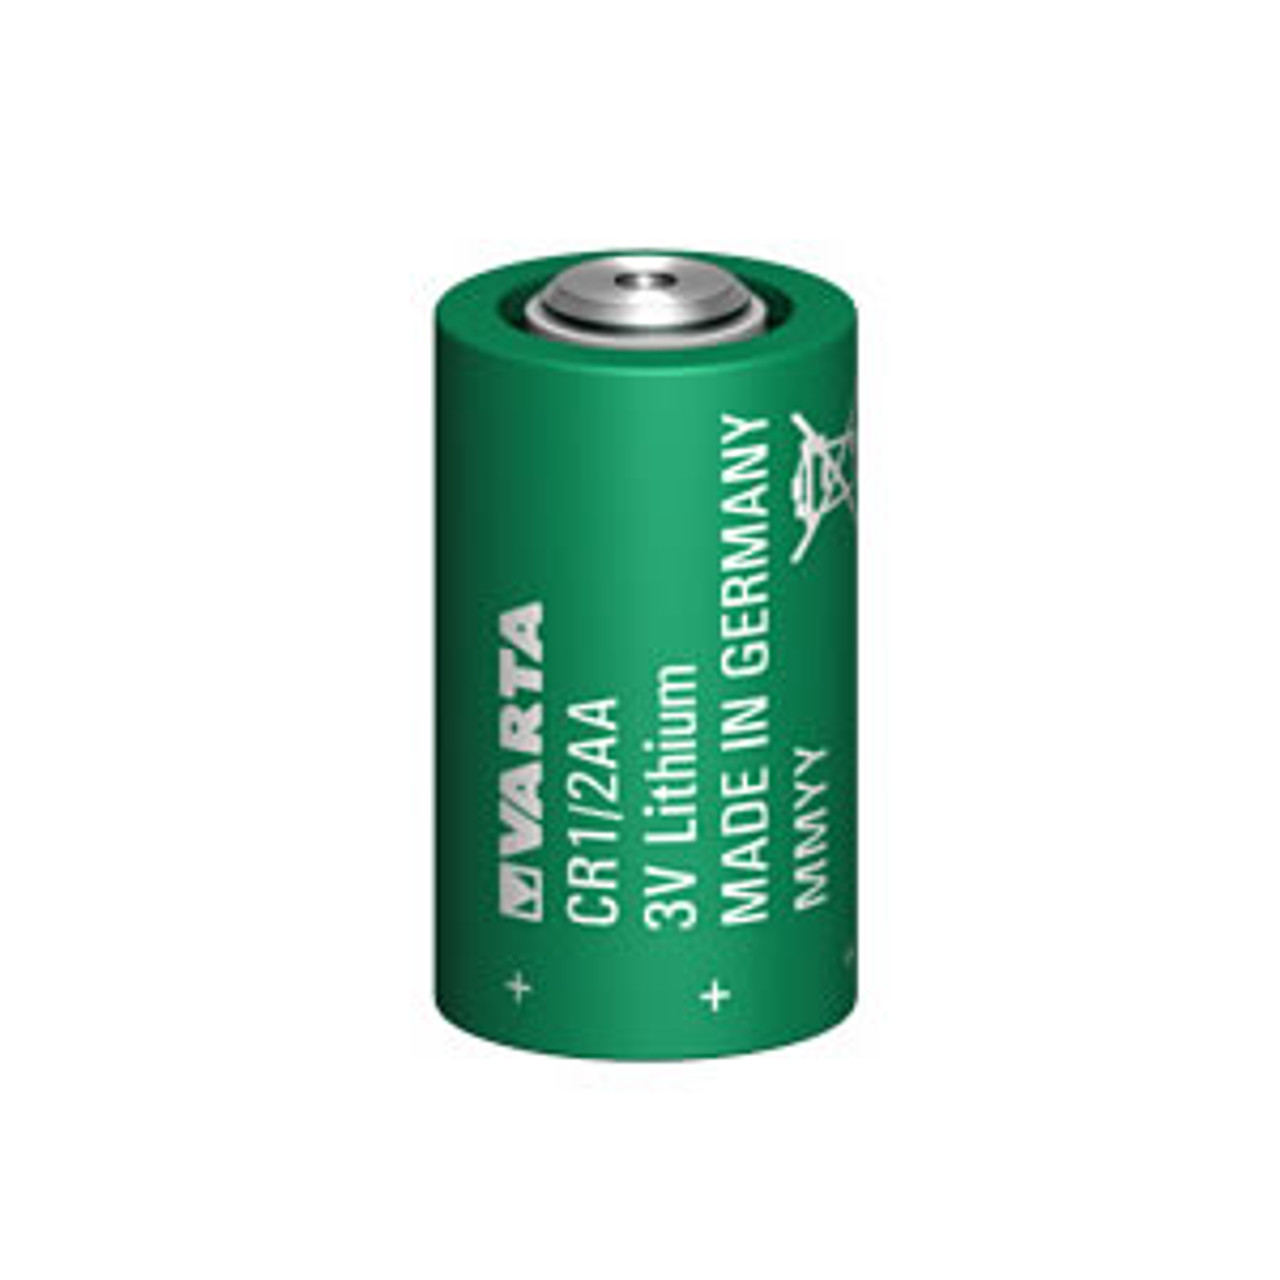 Varta 6127101301 - CR1/2AA Battery - 1/2 AA 3V 950mAh Lithium